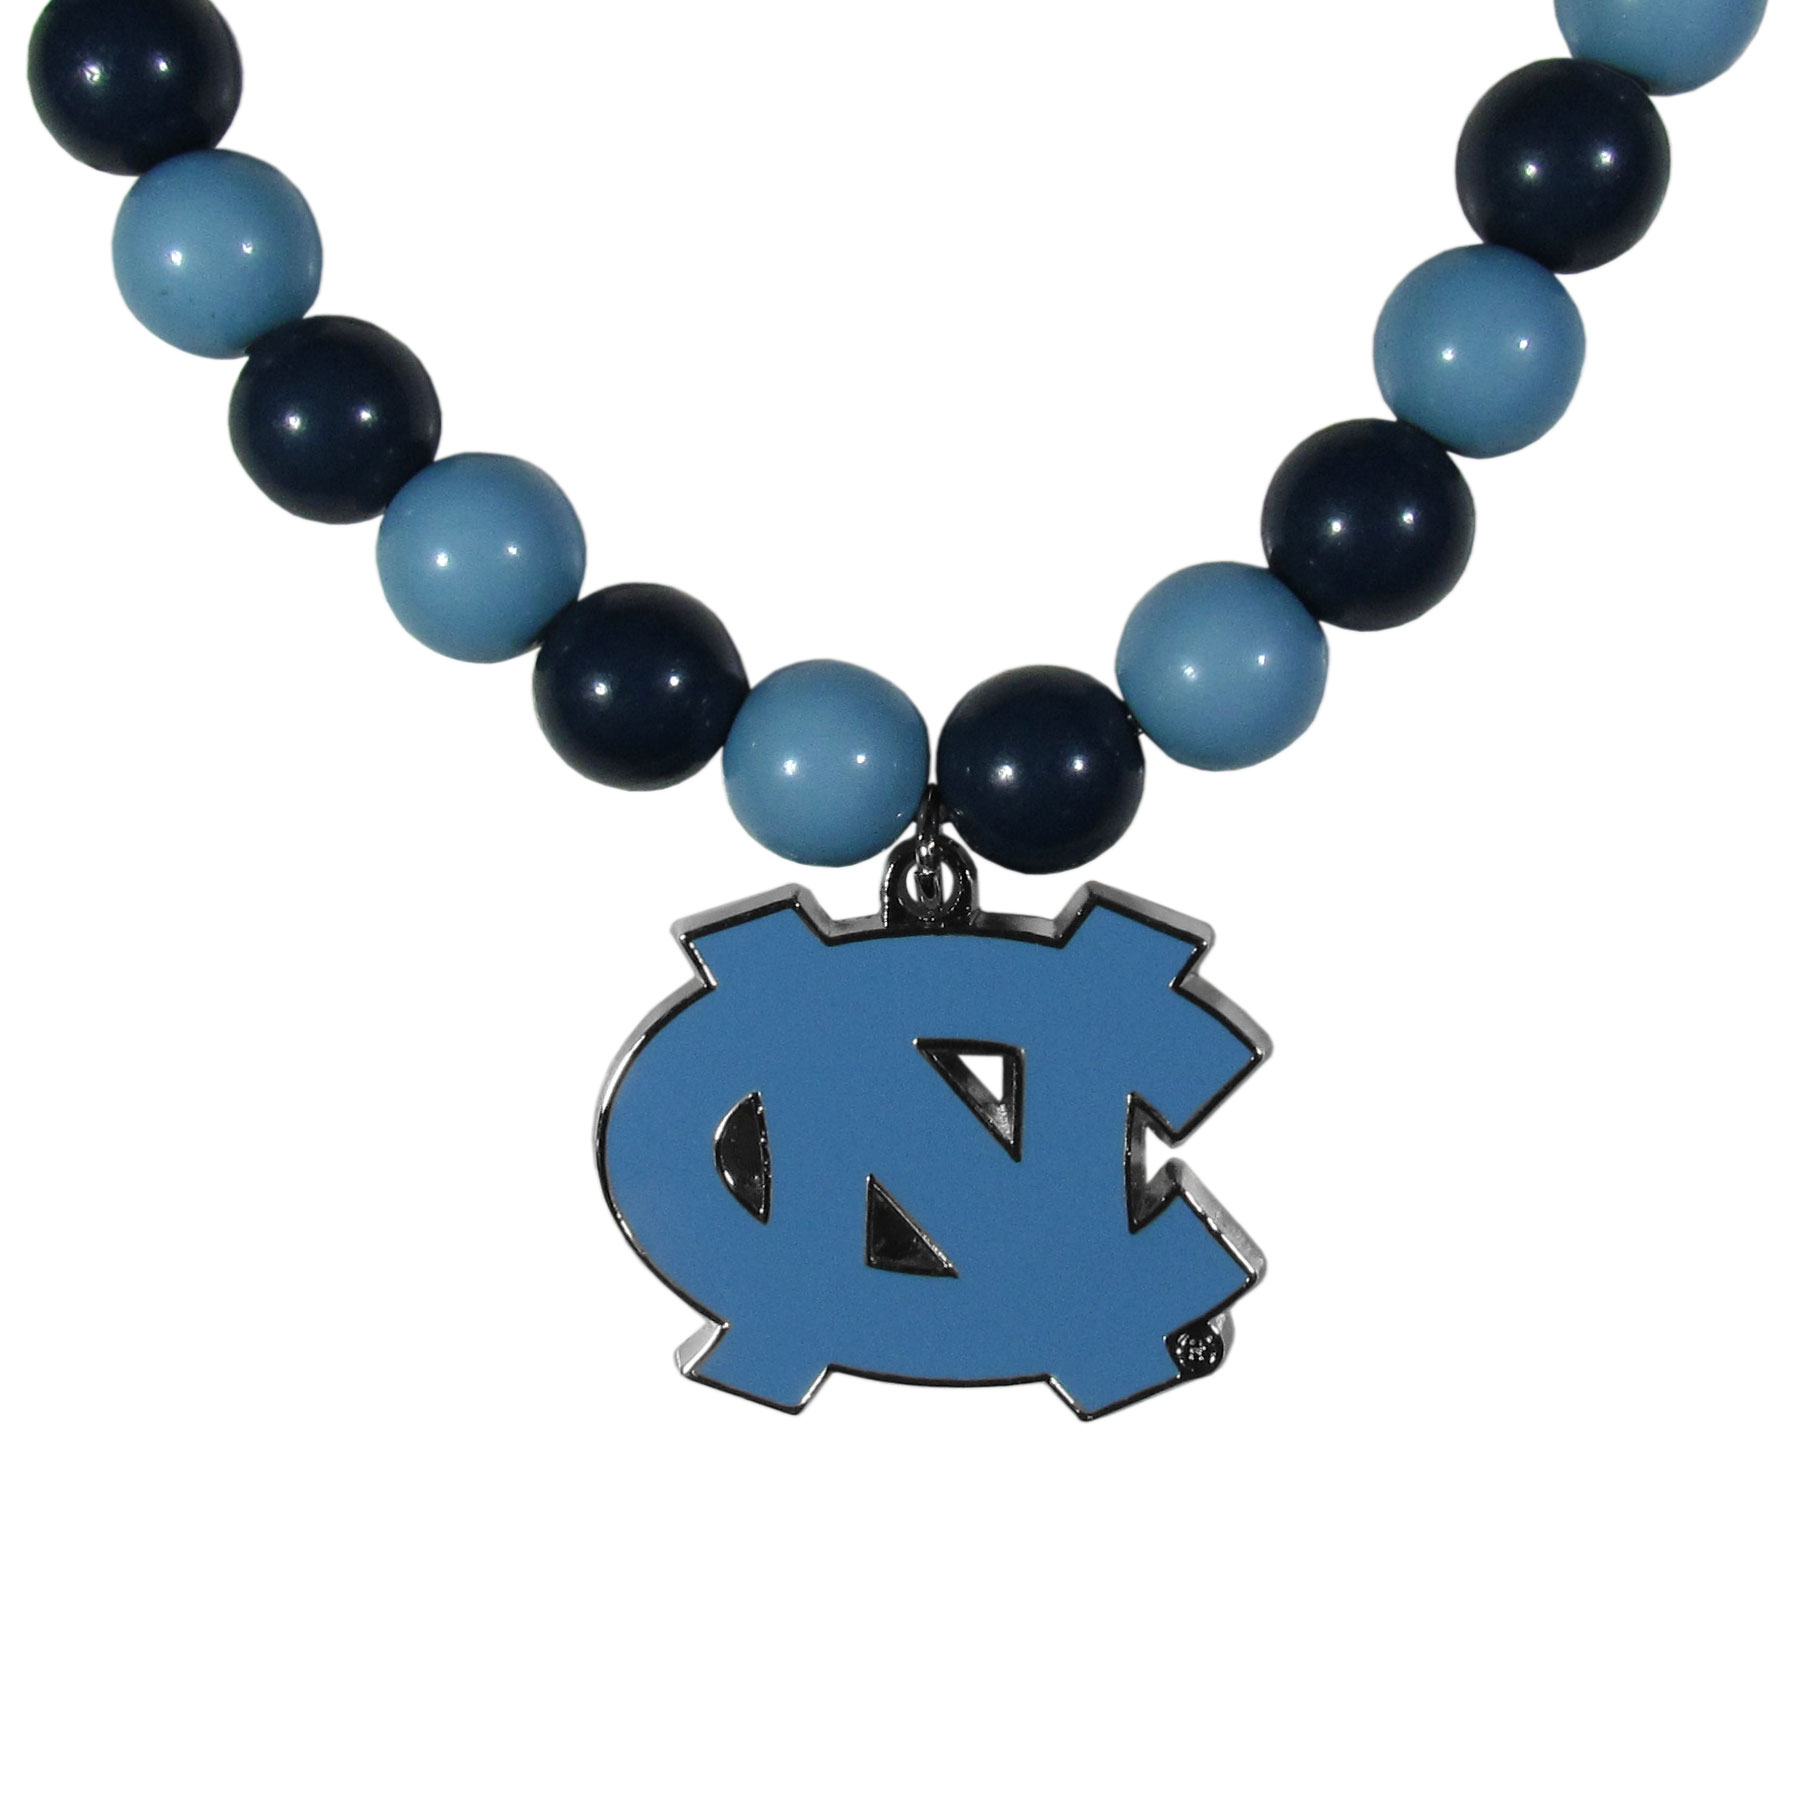 N. Carolina Tar Heels Fan Bead Necklace - Make a big statement with our fan bead necklaces! These brightly colored necklace have a 24 inch string of alternating colored beads with an extra large, high-polish N. Carolina Tar Heels pendant.